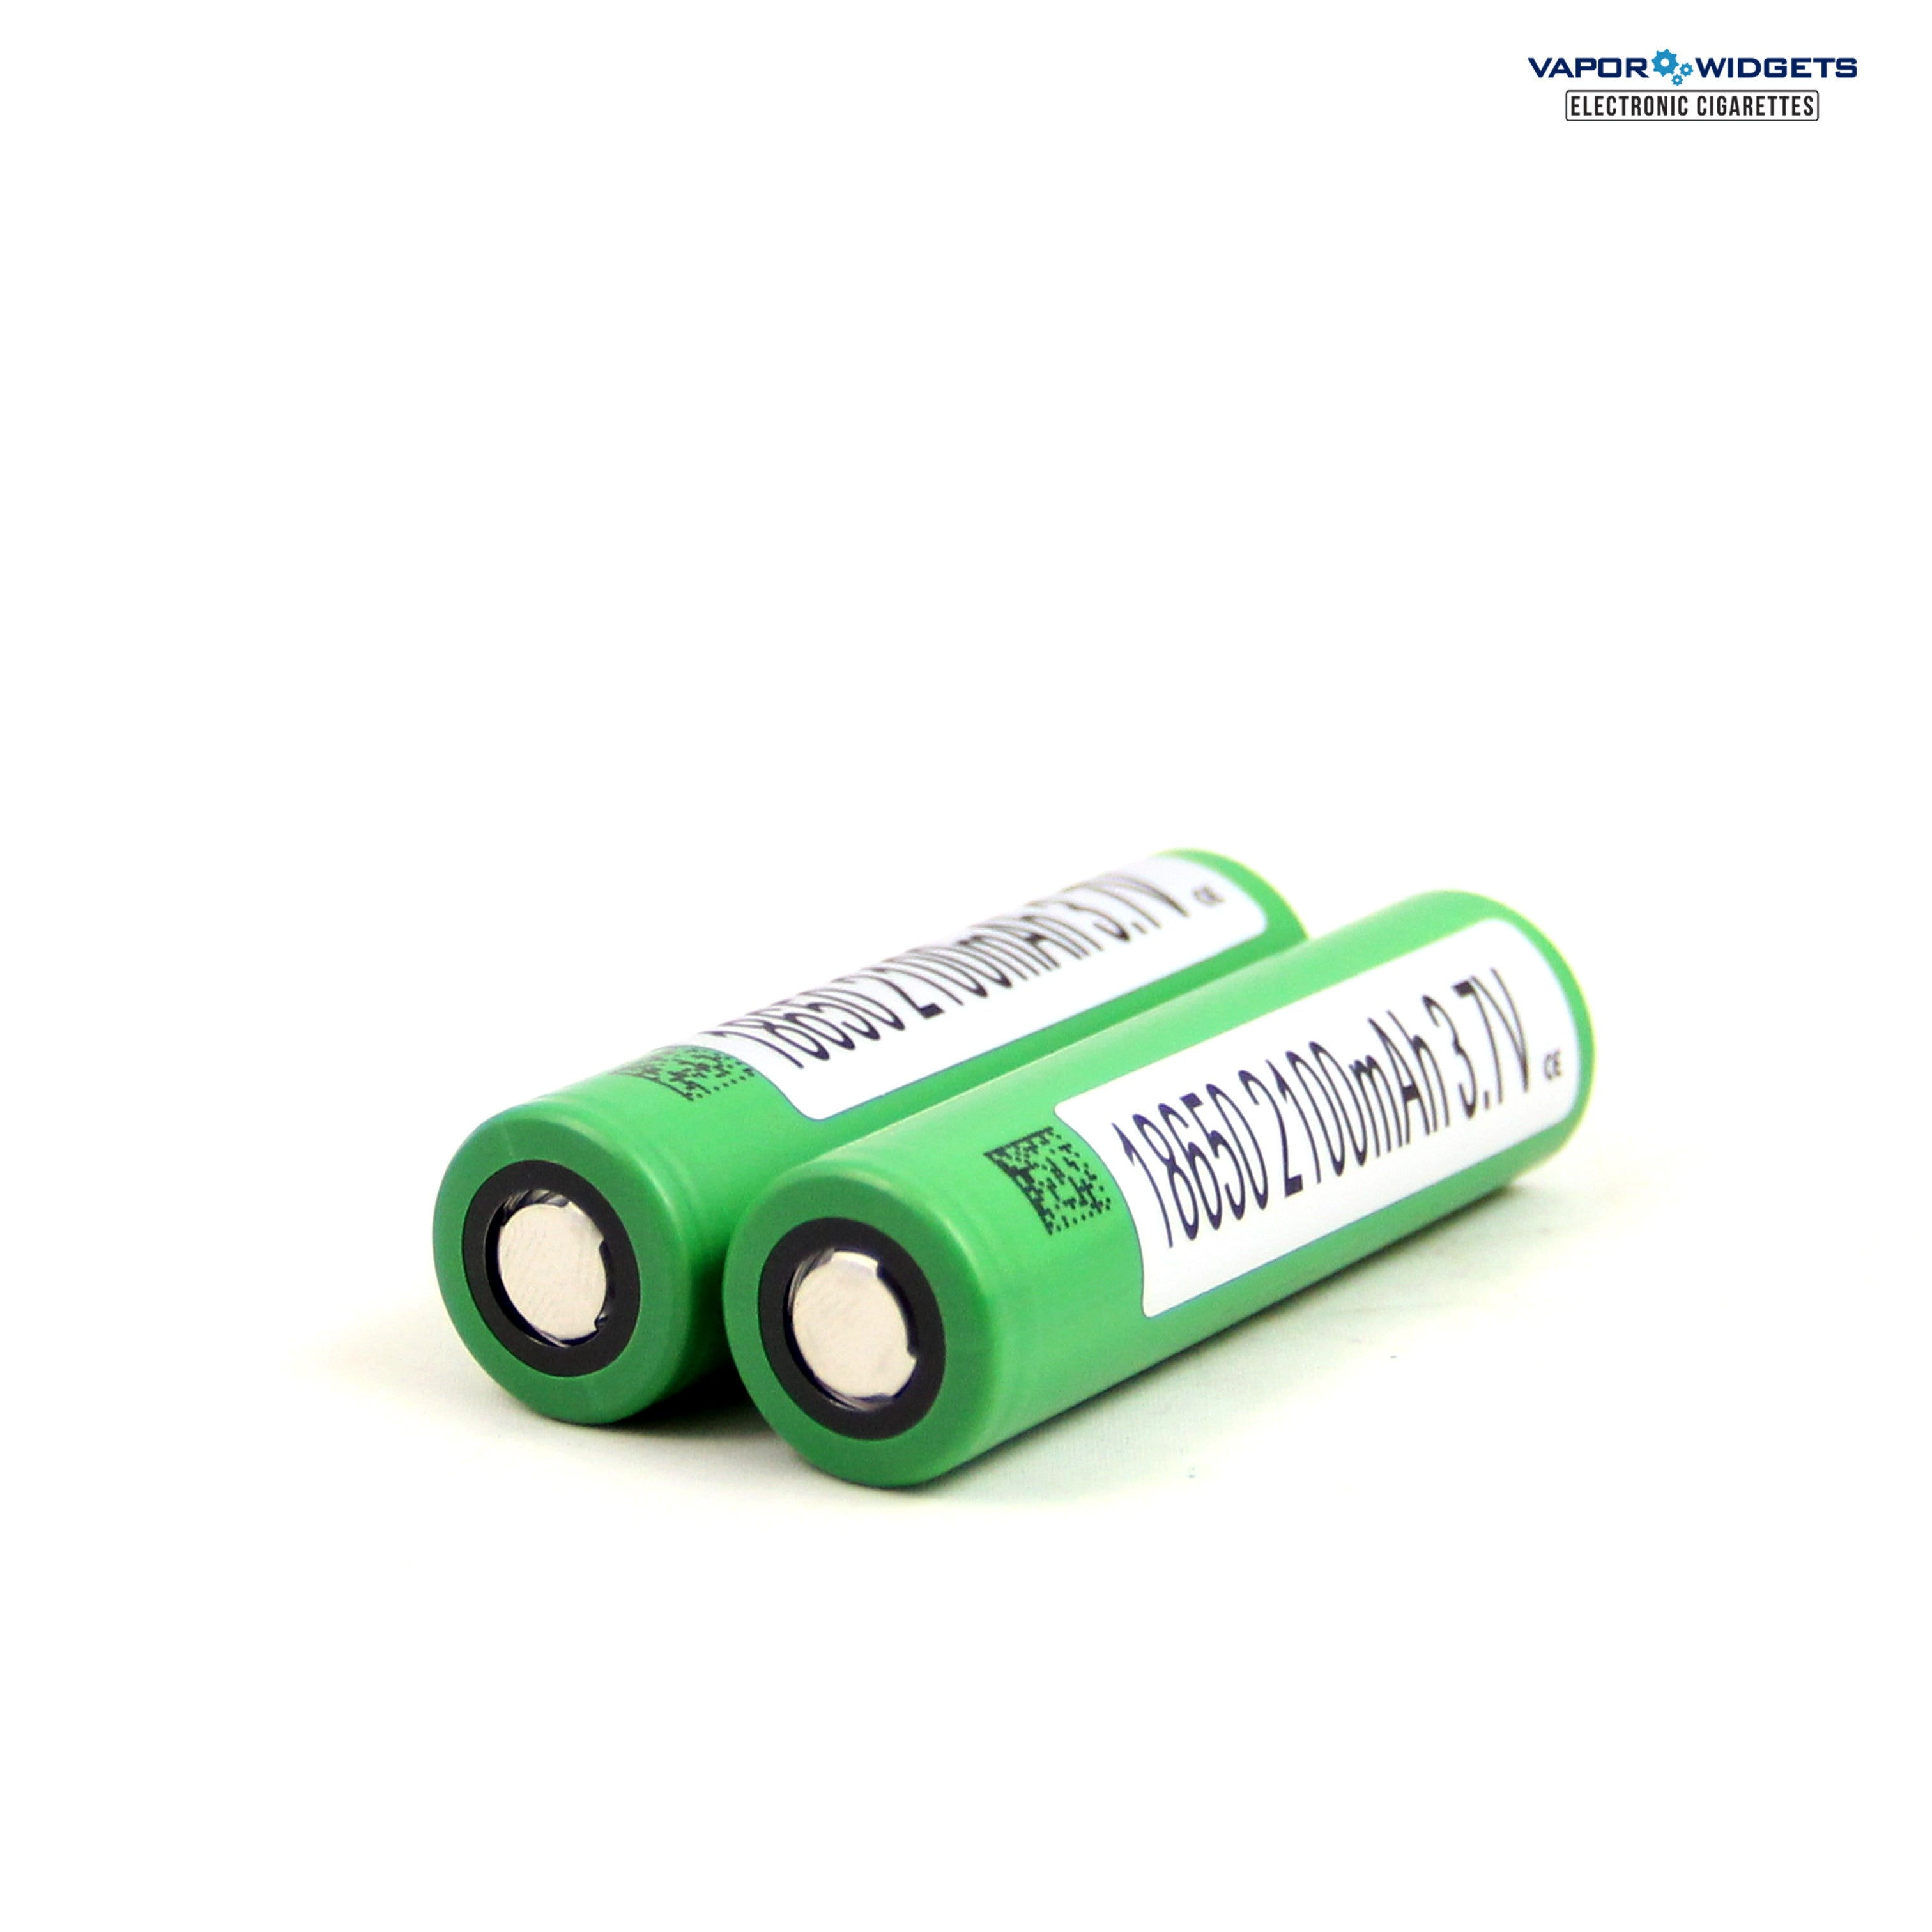 Green Sony VTC4 IMR 18650 high drain vape MOD Batteries - Vapor Widgets